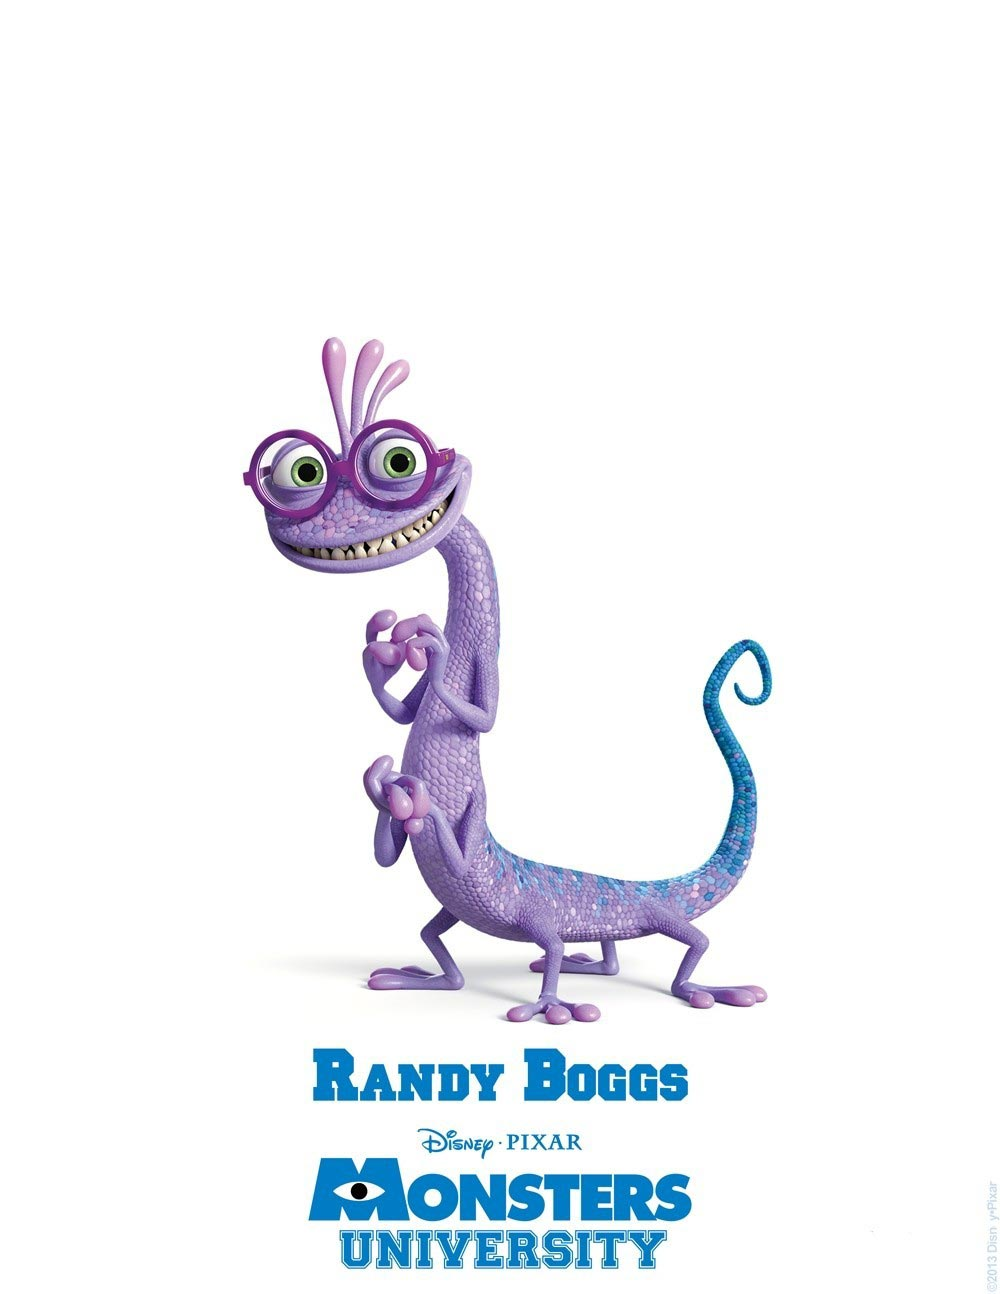 MONSTERS UNIVERSITY Character Posters and ID cards